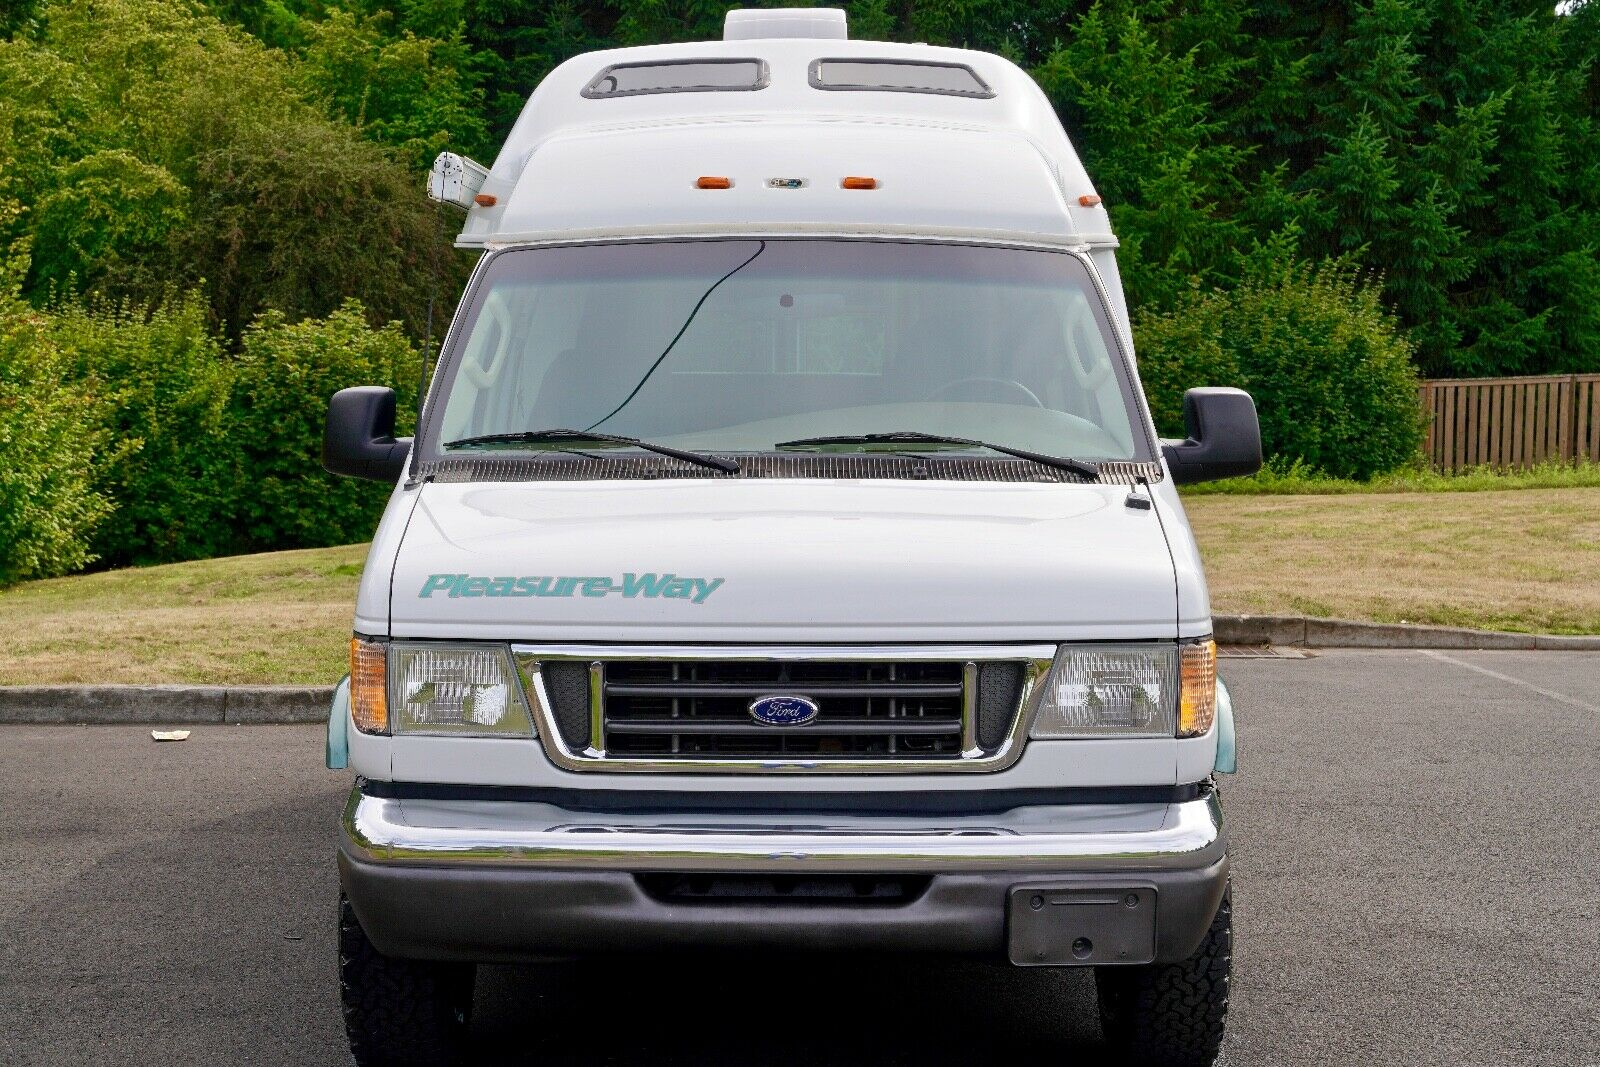 well equipped 2004 Ford Pleasure Way Excel TS camper